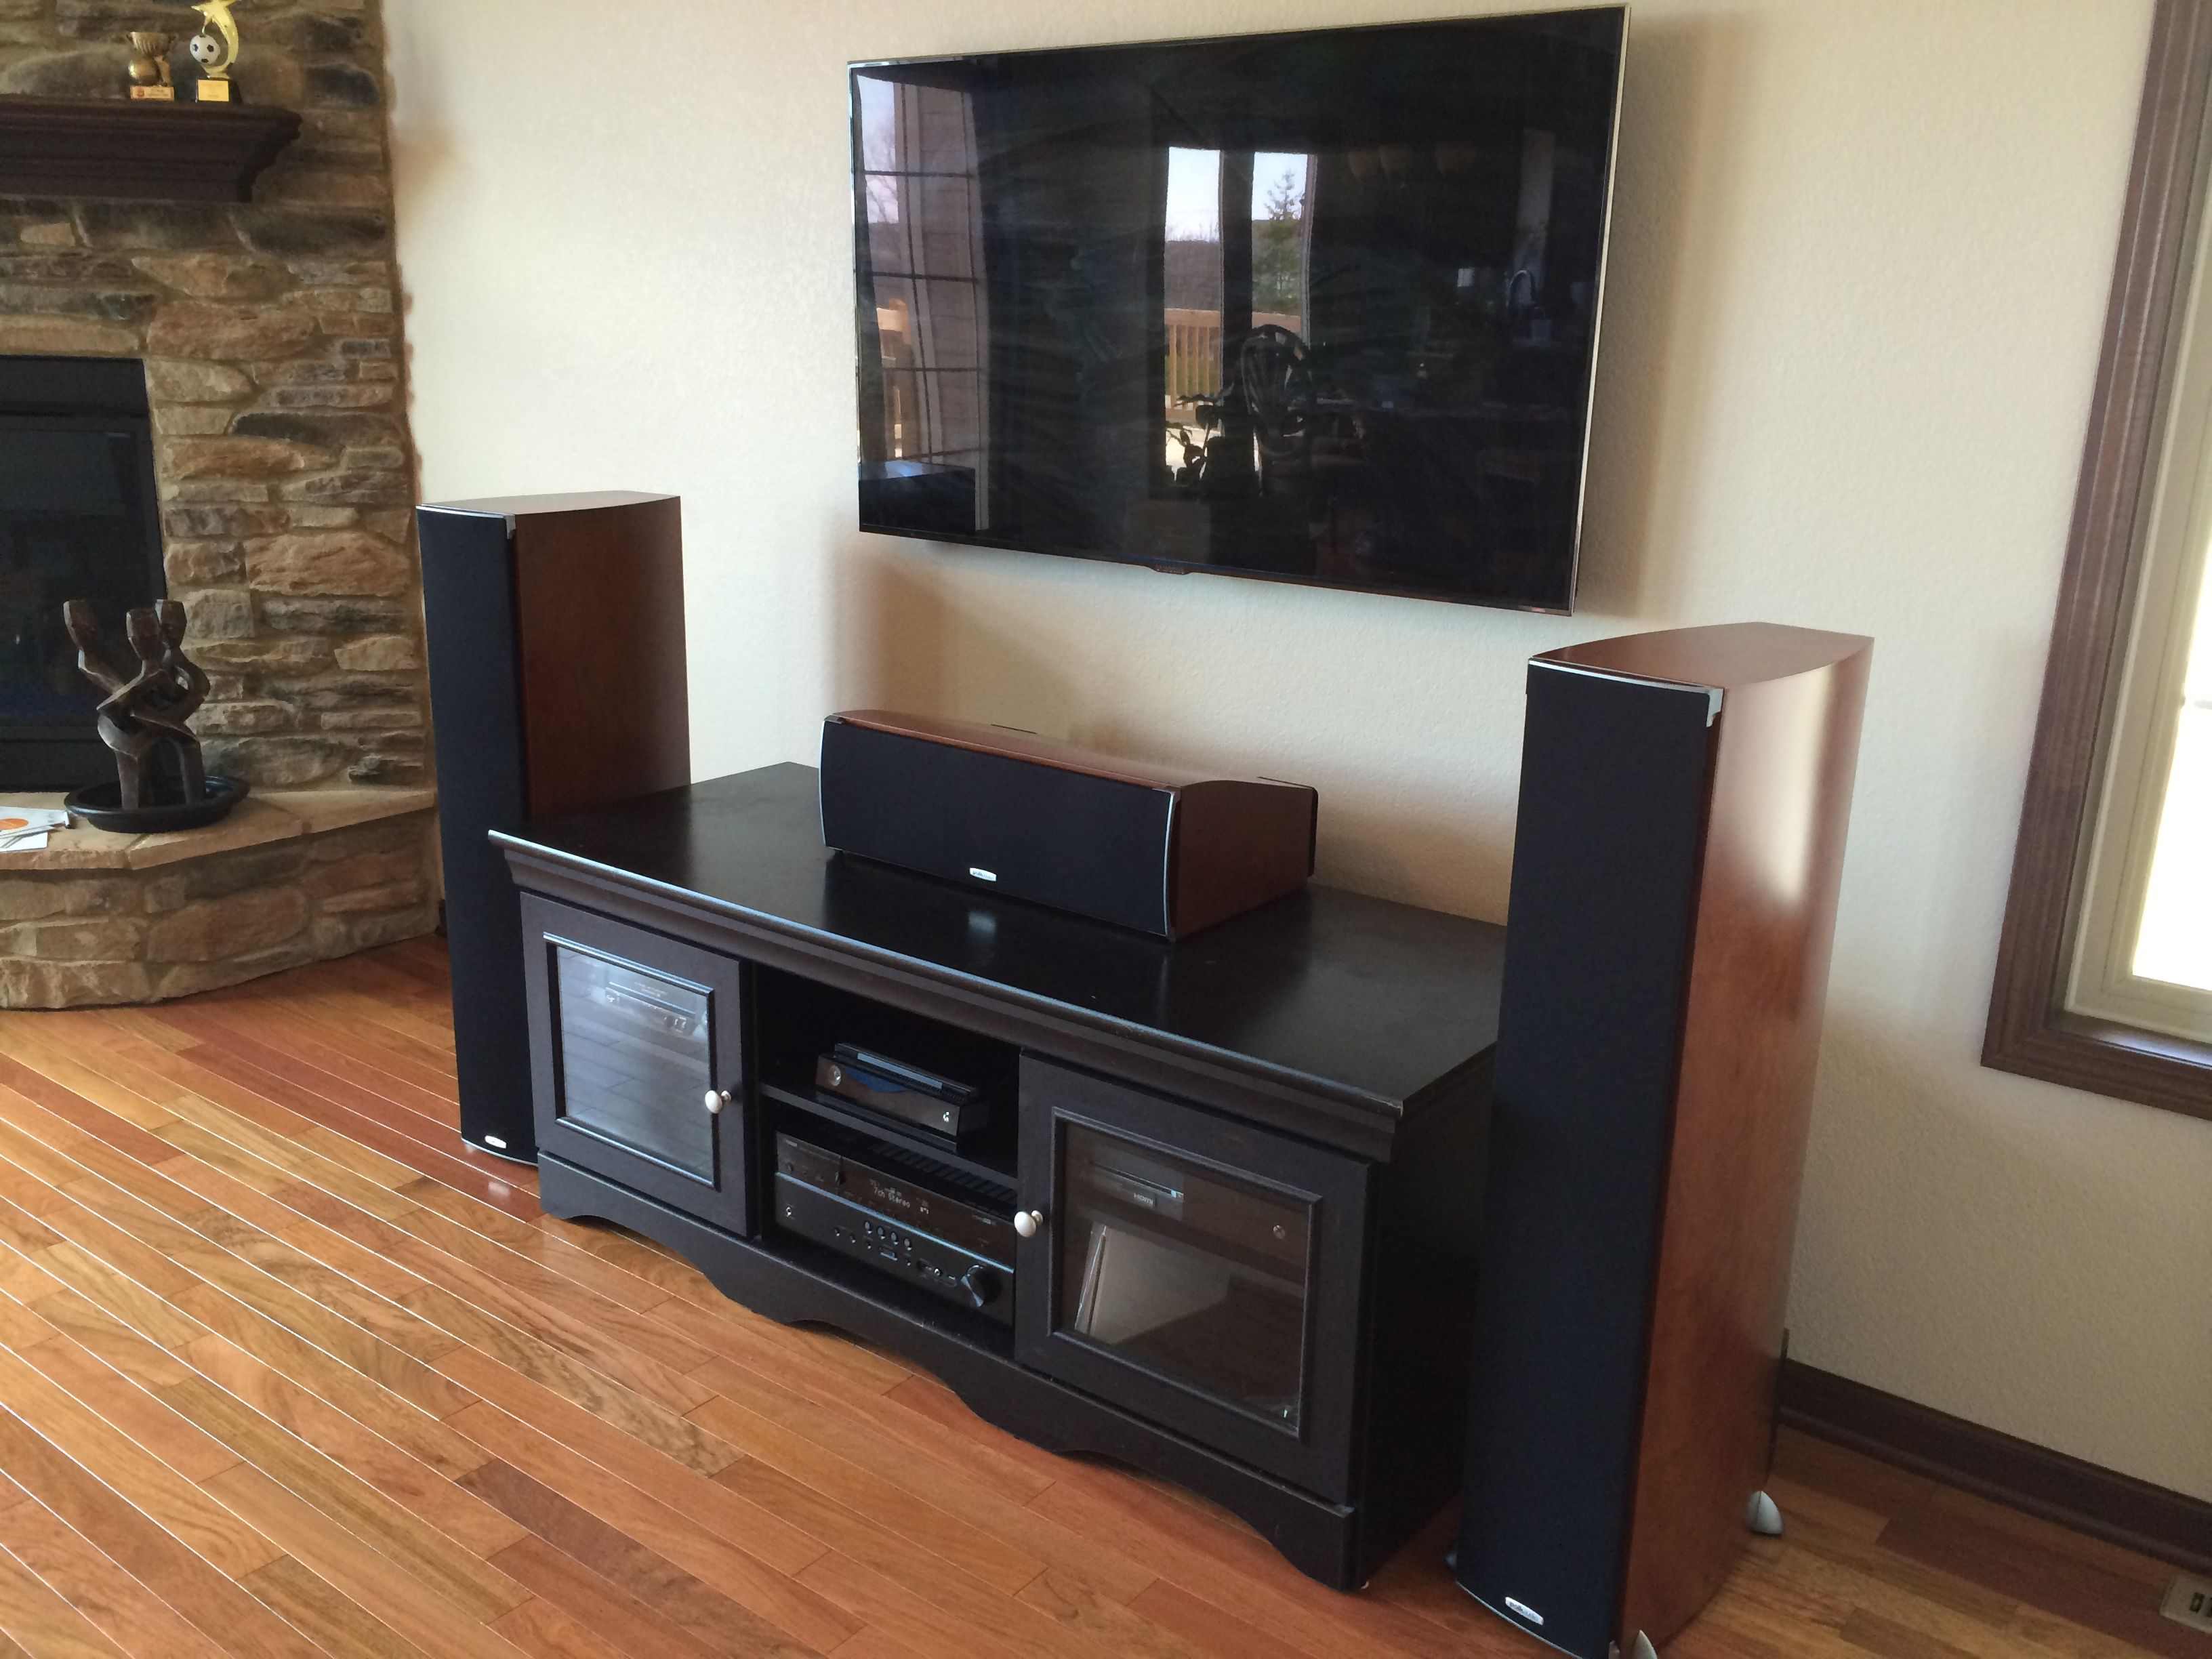 Premium Home Theater System With Wall Mounted Flat Panel TV And Floor Standing Speakers